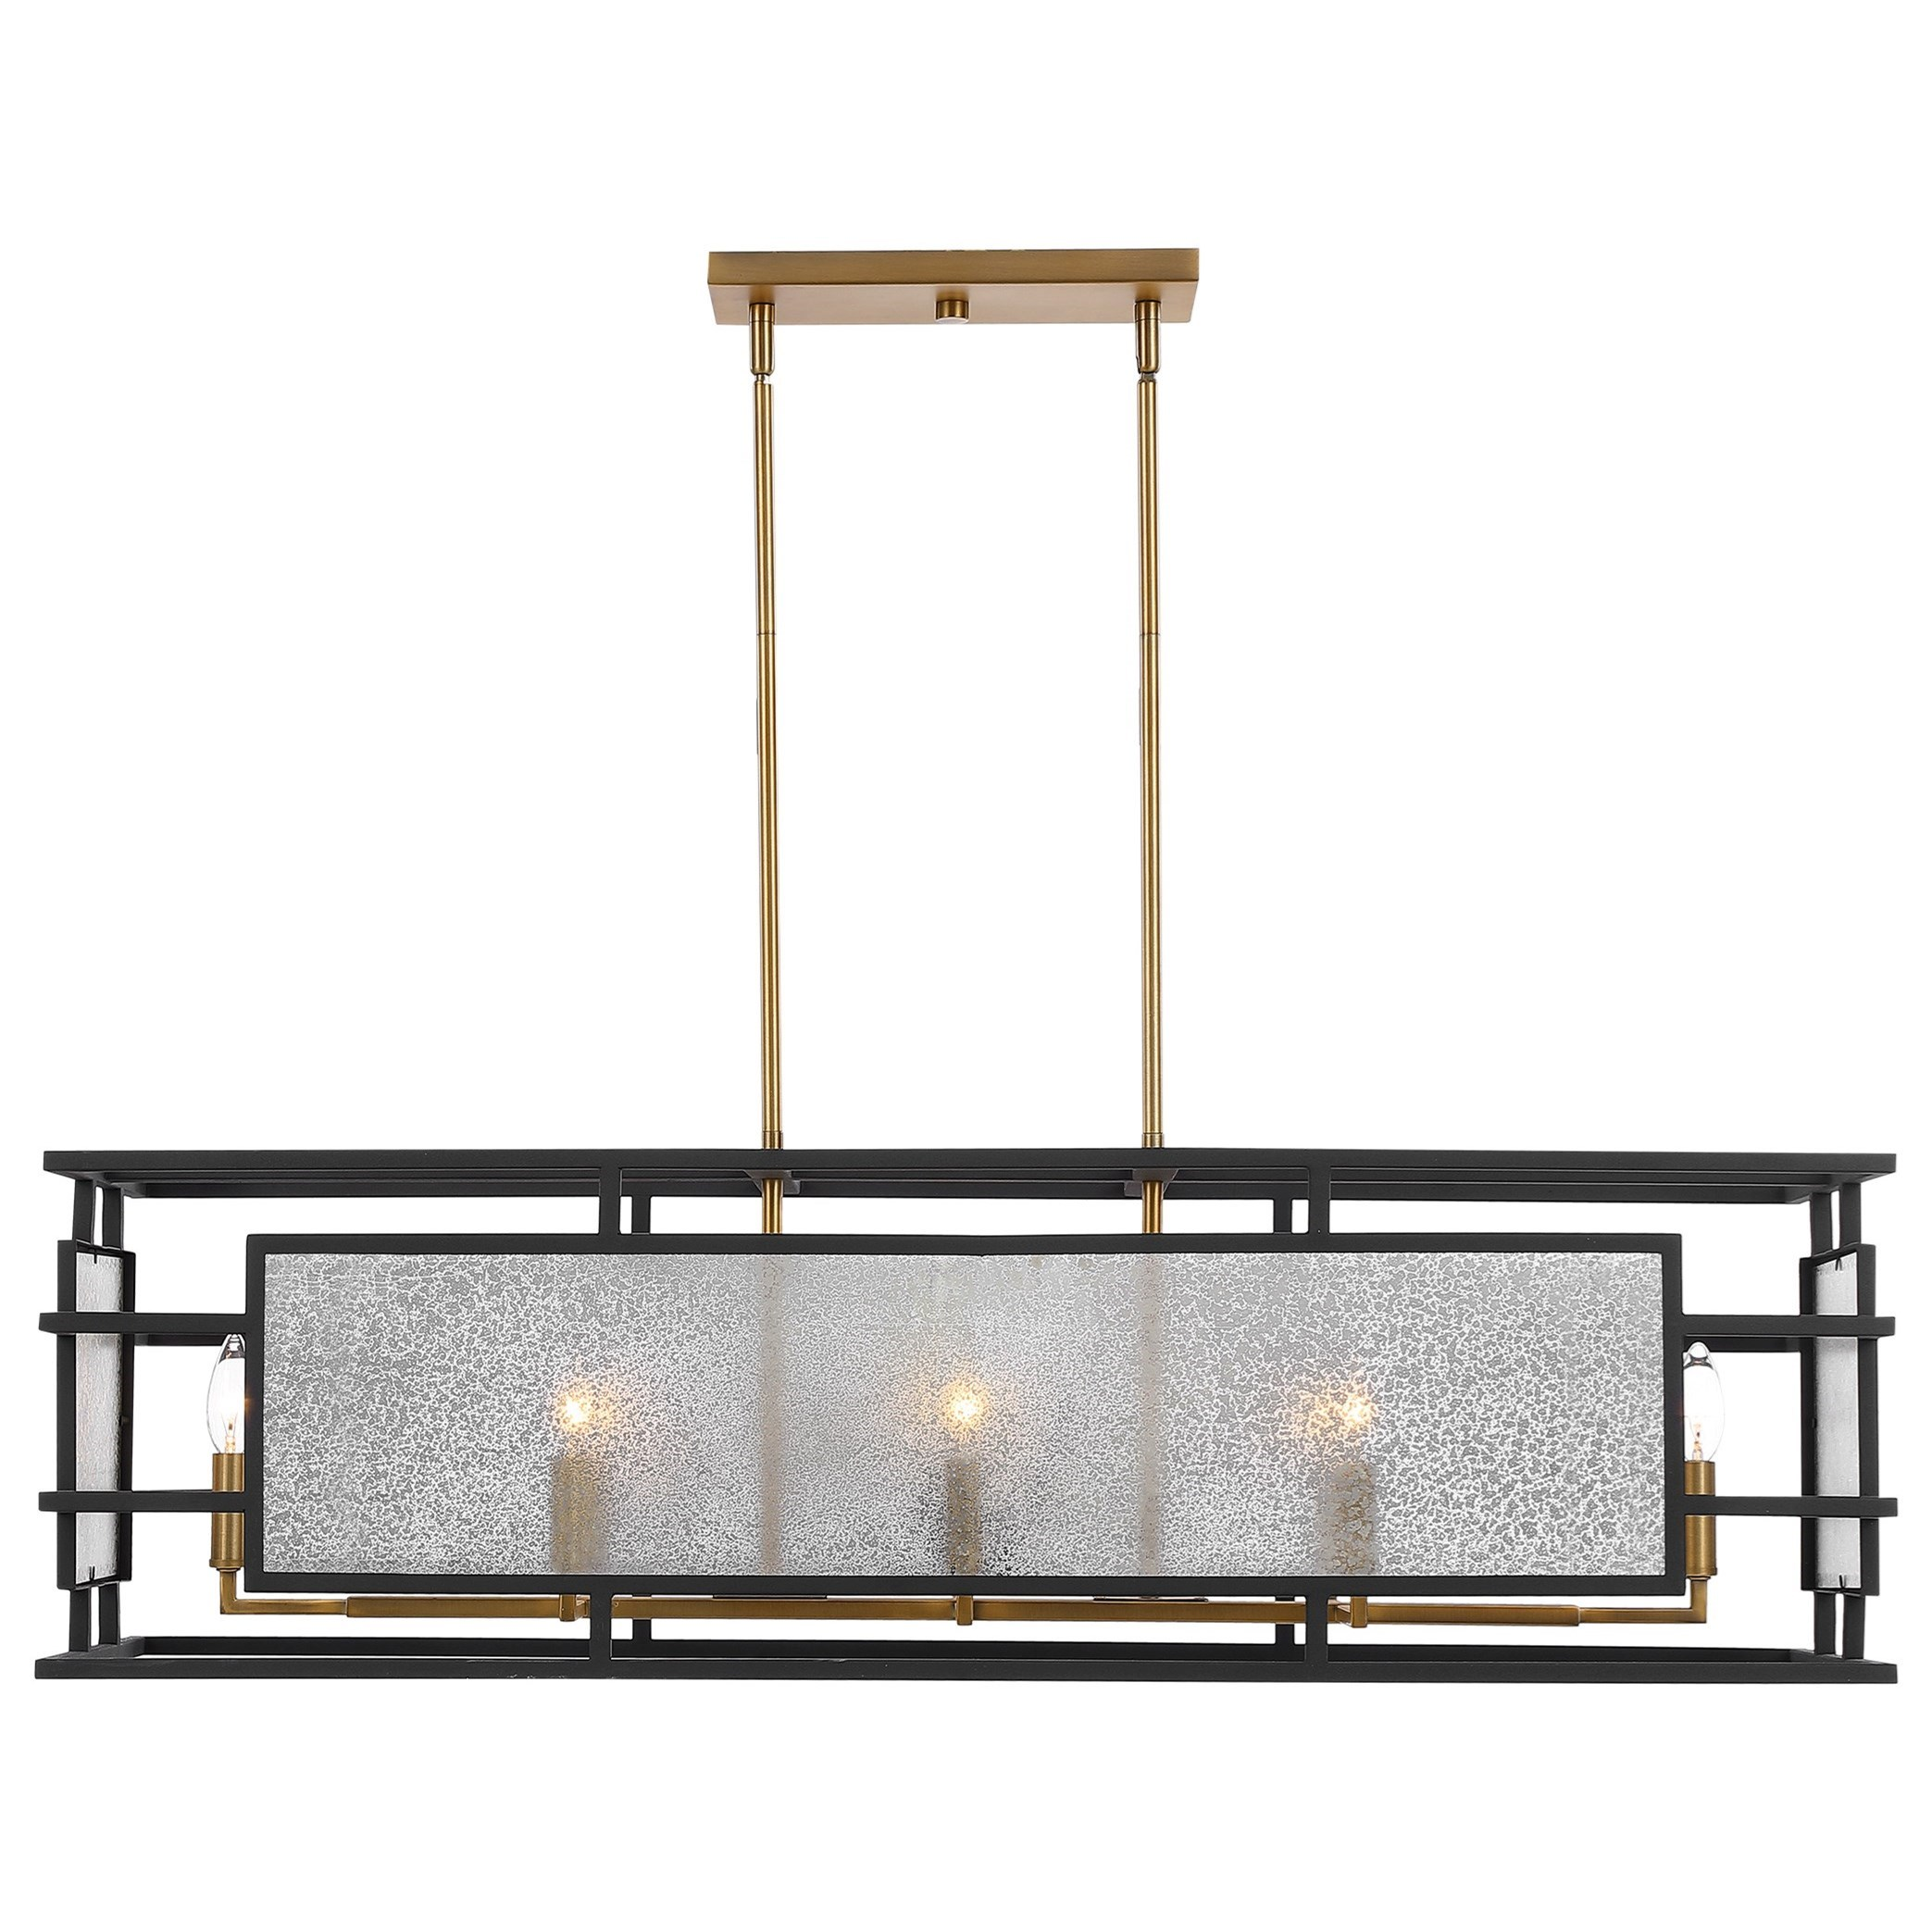 Lighting Fixtures - Chandeliers Holmes 8 Light Linear Chandelier by Uttermost at Hudson's Furniture